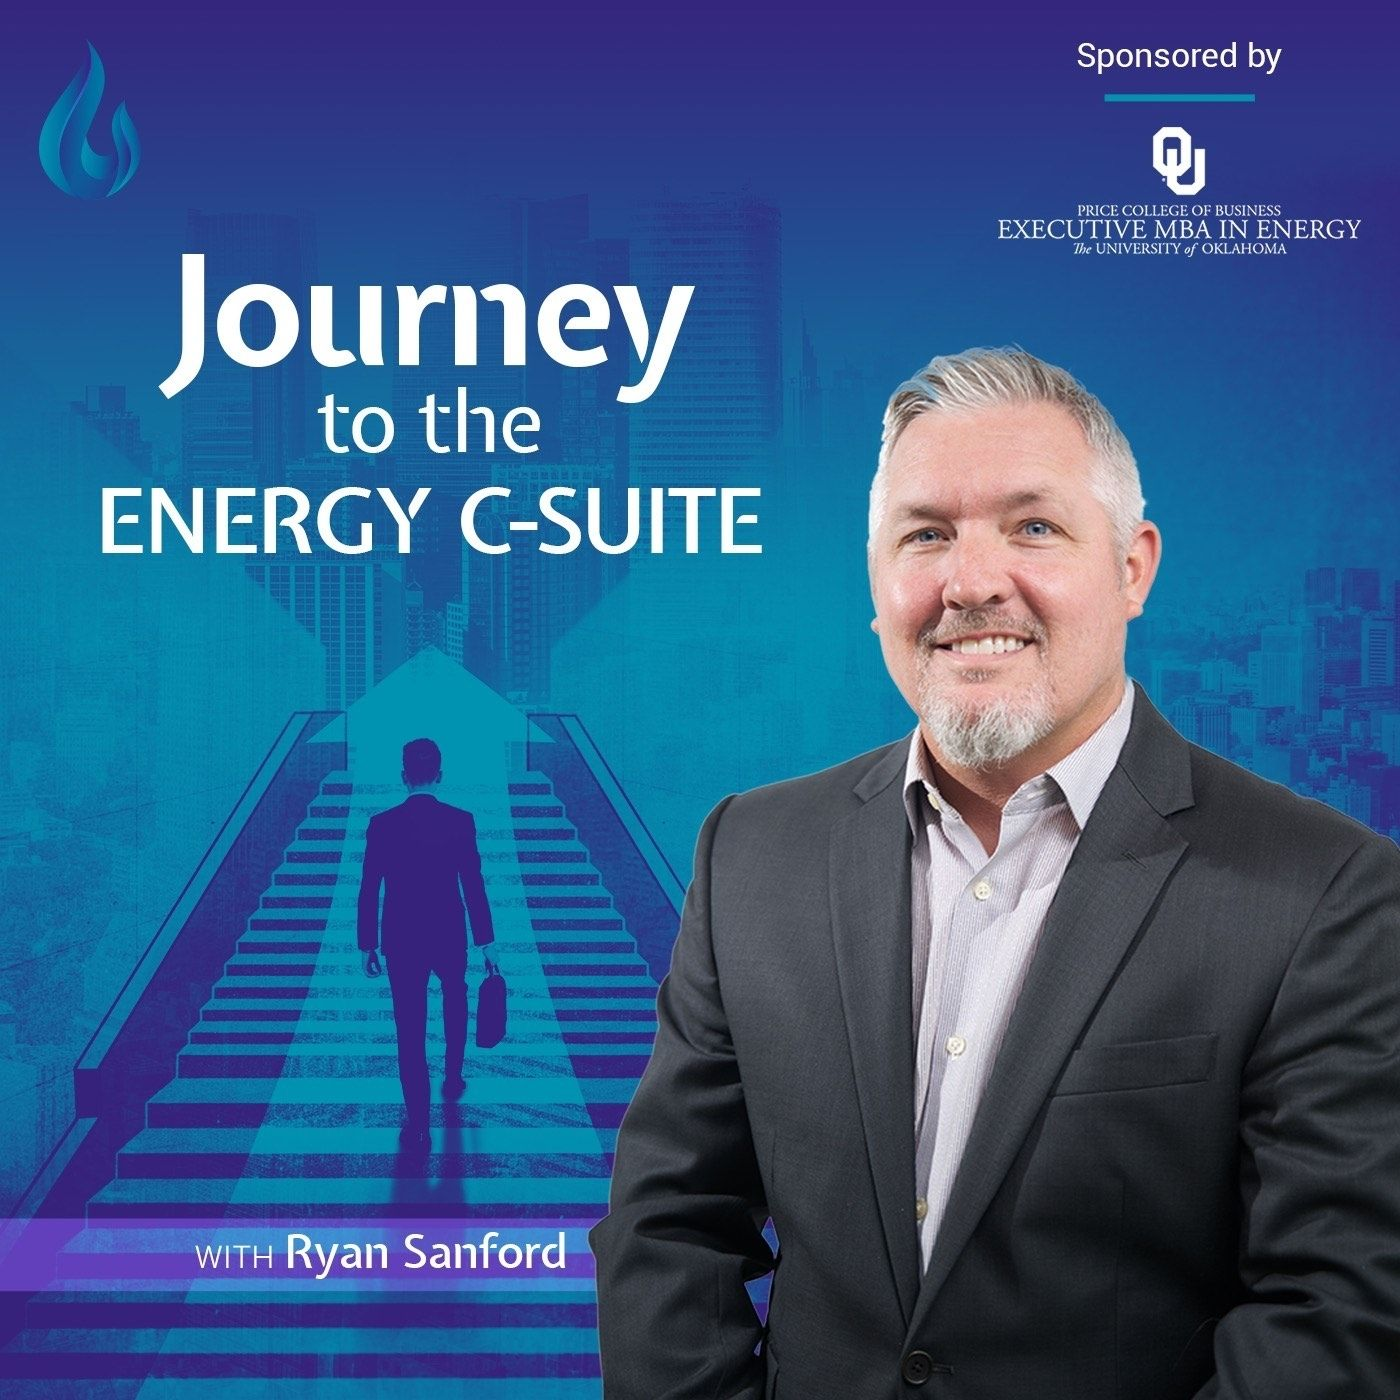 Journey to the Energy C-Suite